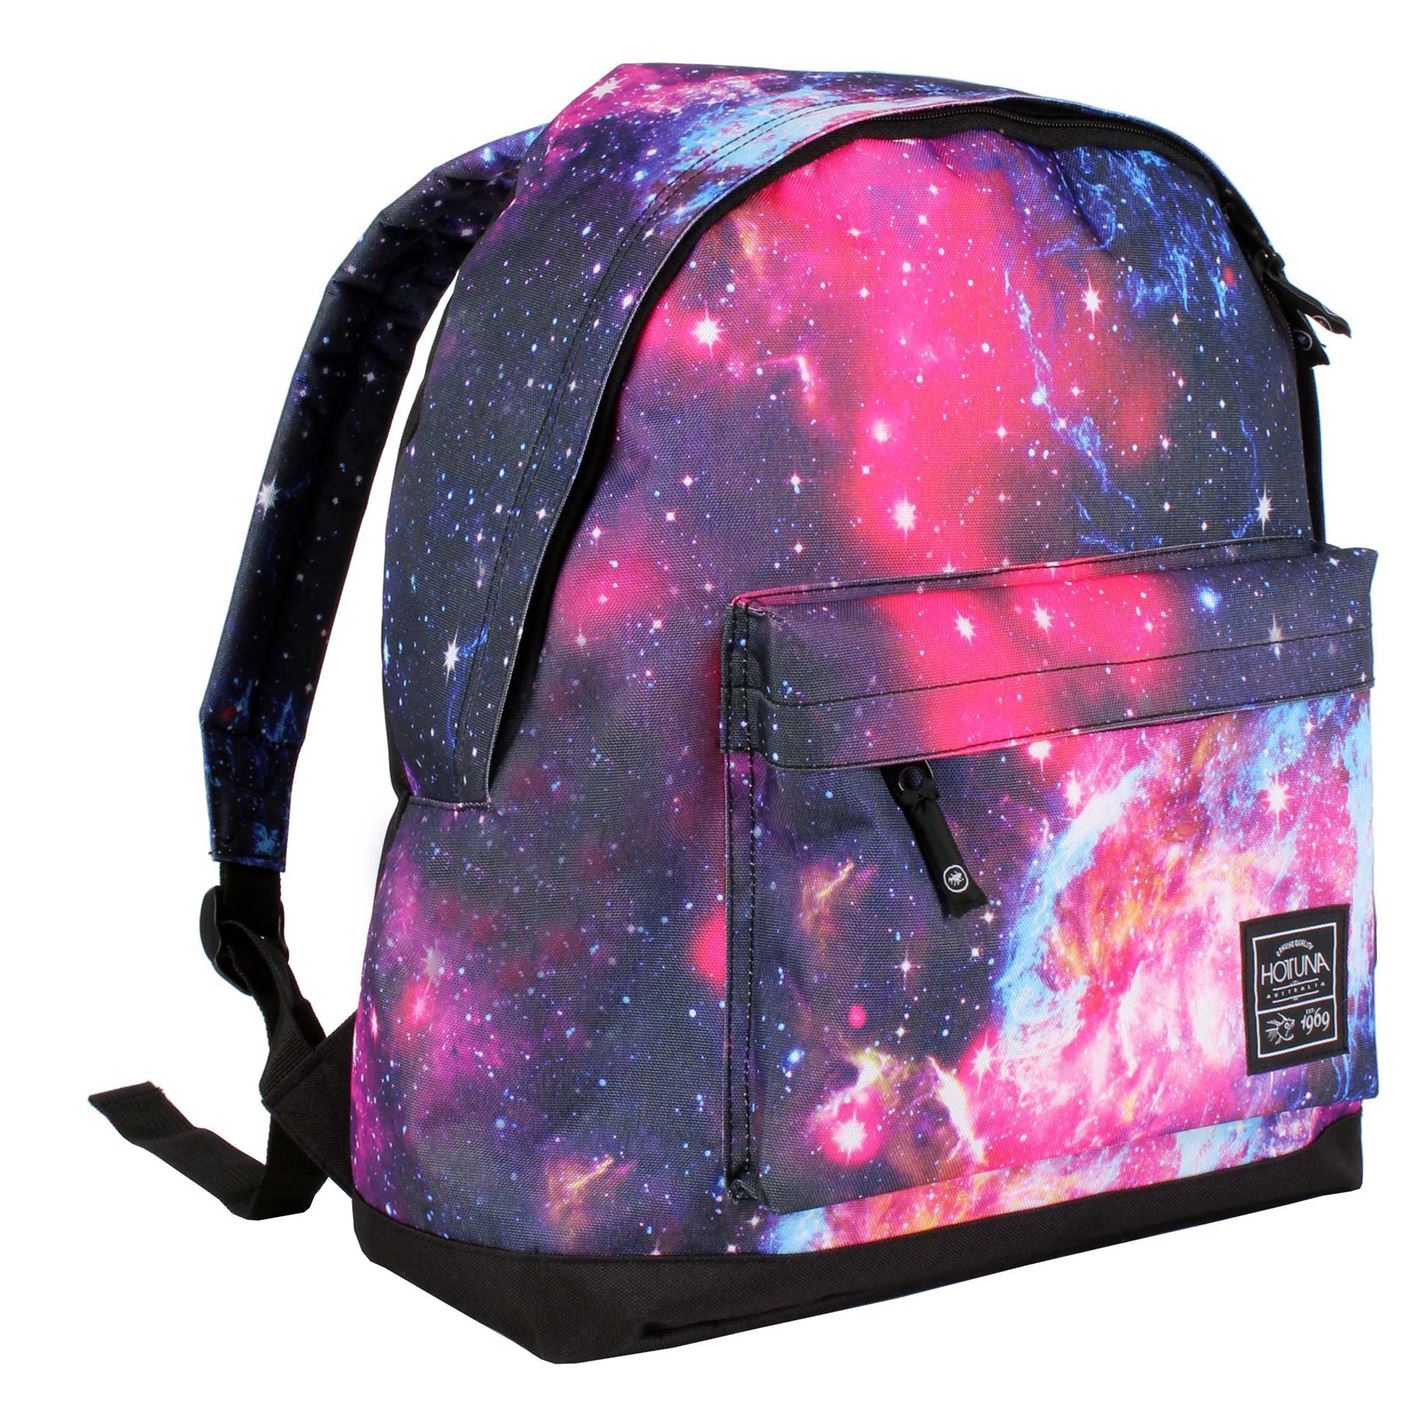 Hot Tuna Galaxy Backpack Pink/Purple Rucksack Shoulder Carryall ...